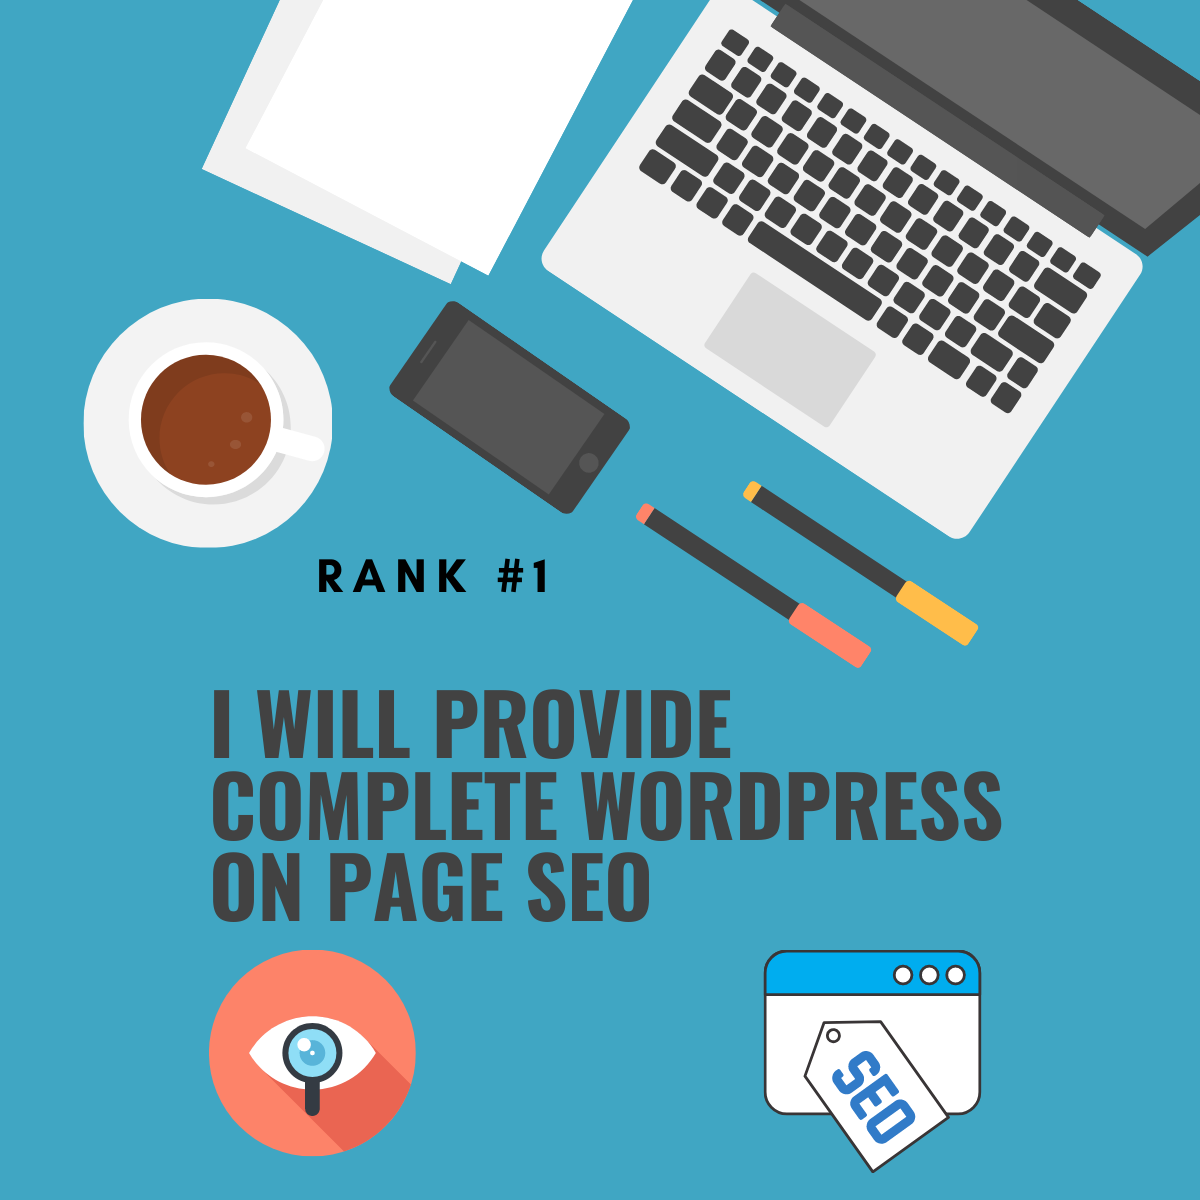 I will provide complete wordpress on page seo